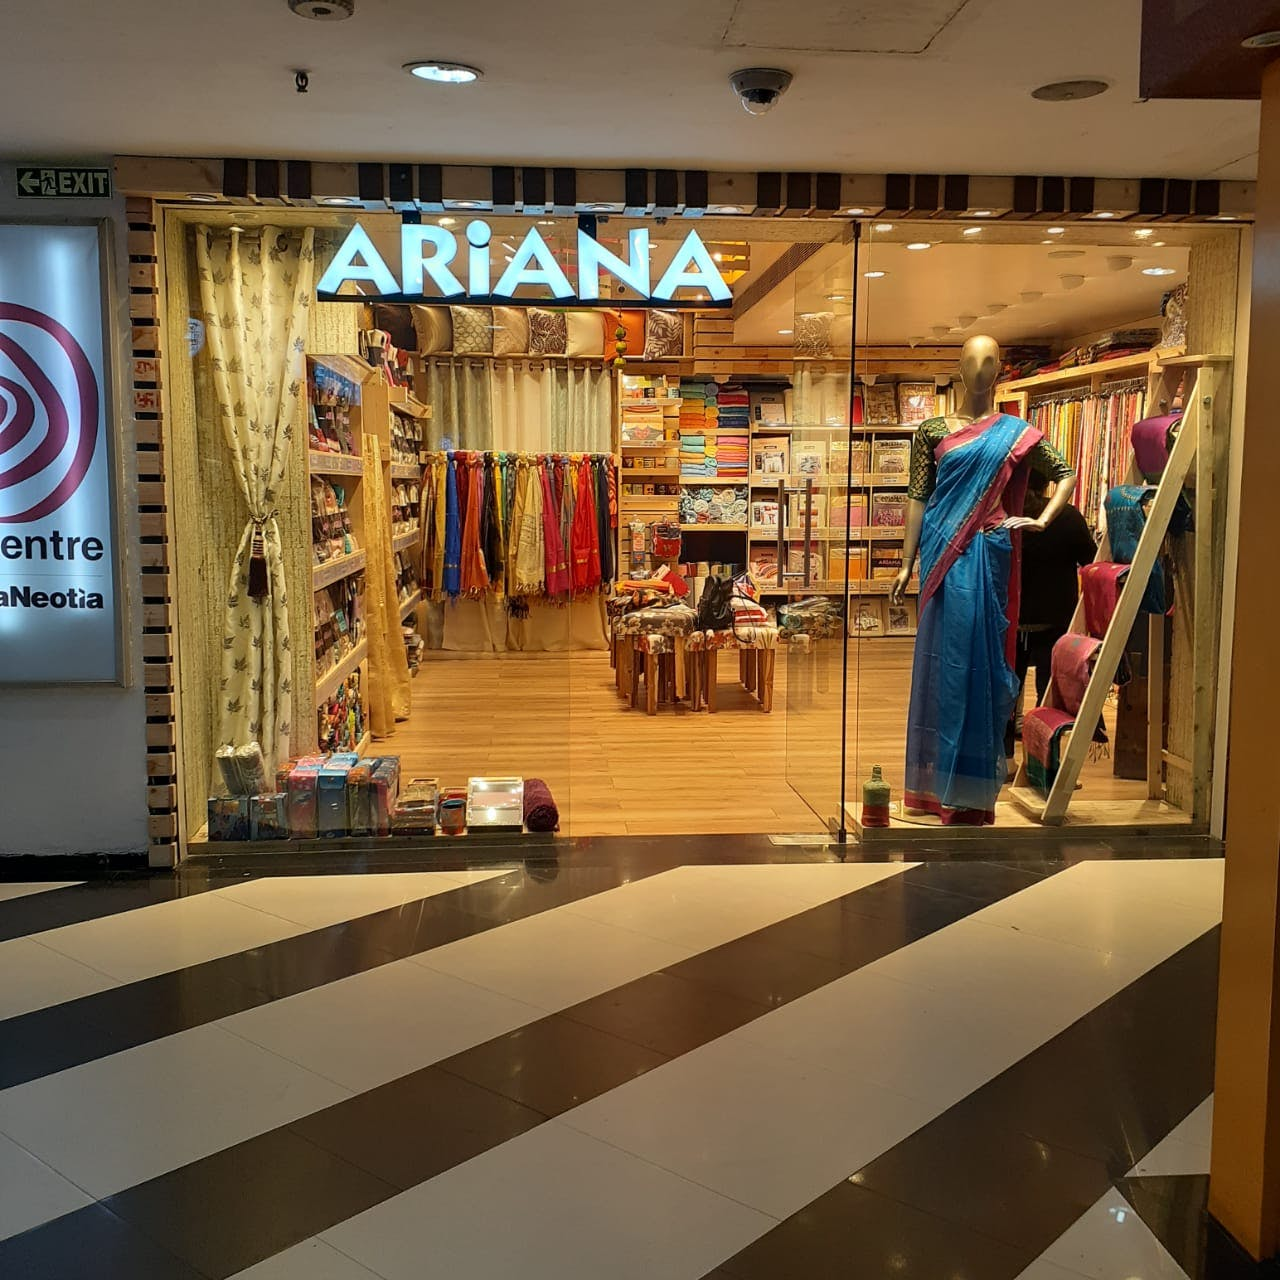 Outlet store,Boutique,Retail,Building,Shopping mall,Fashion,Floor,Shopping,Interior design,Textile